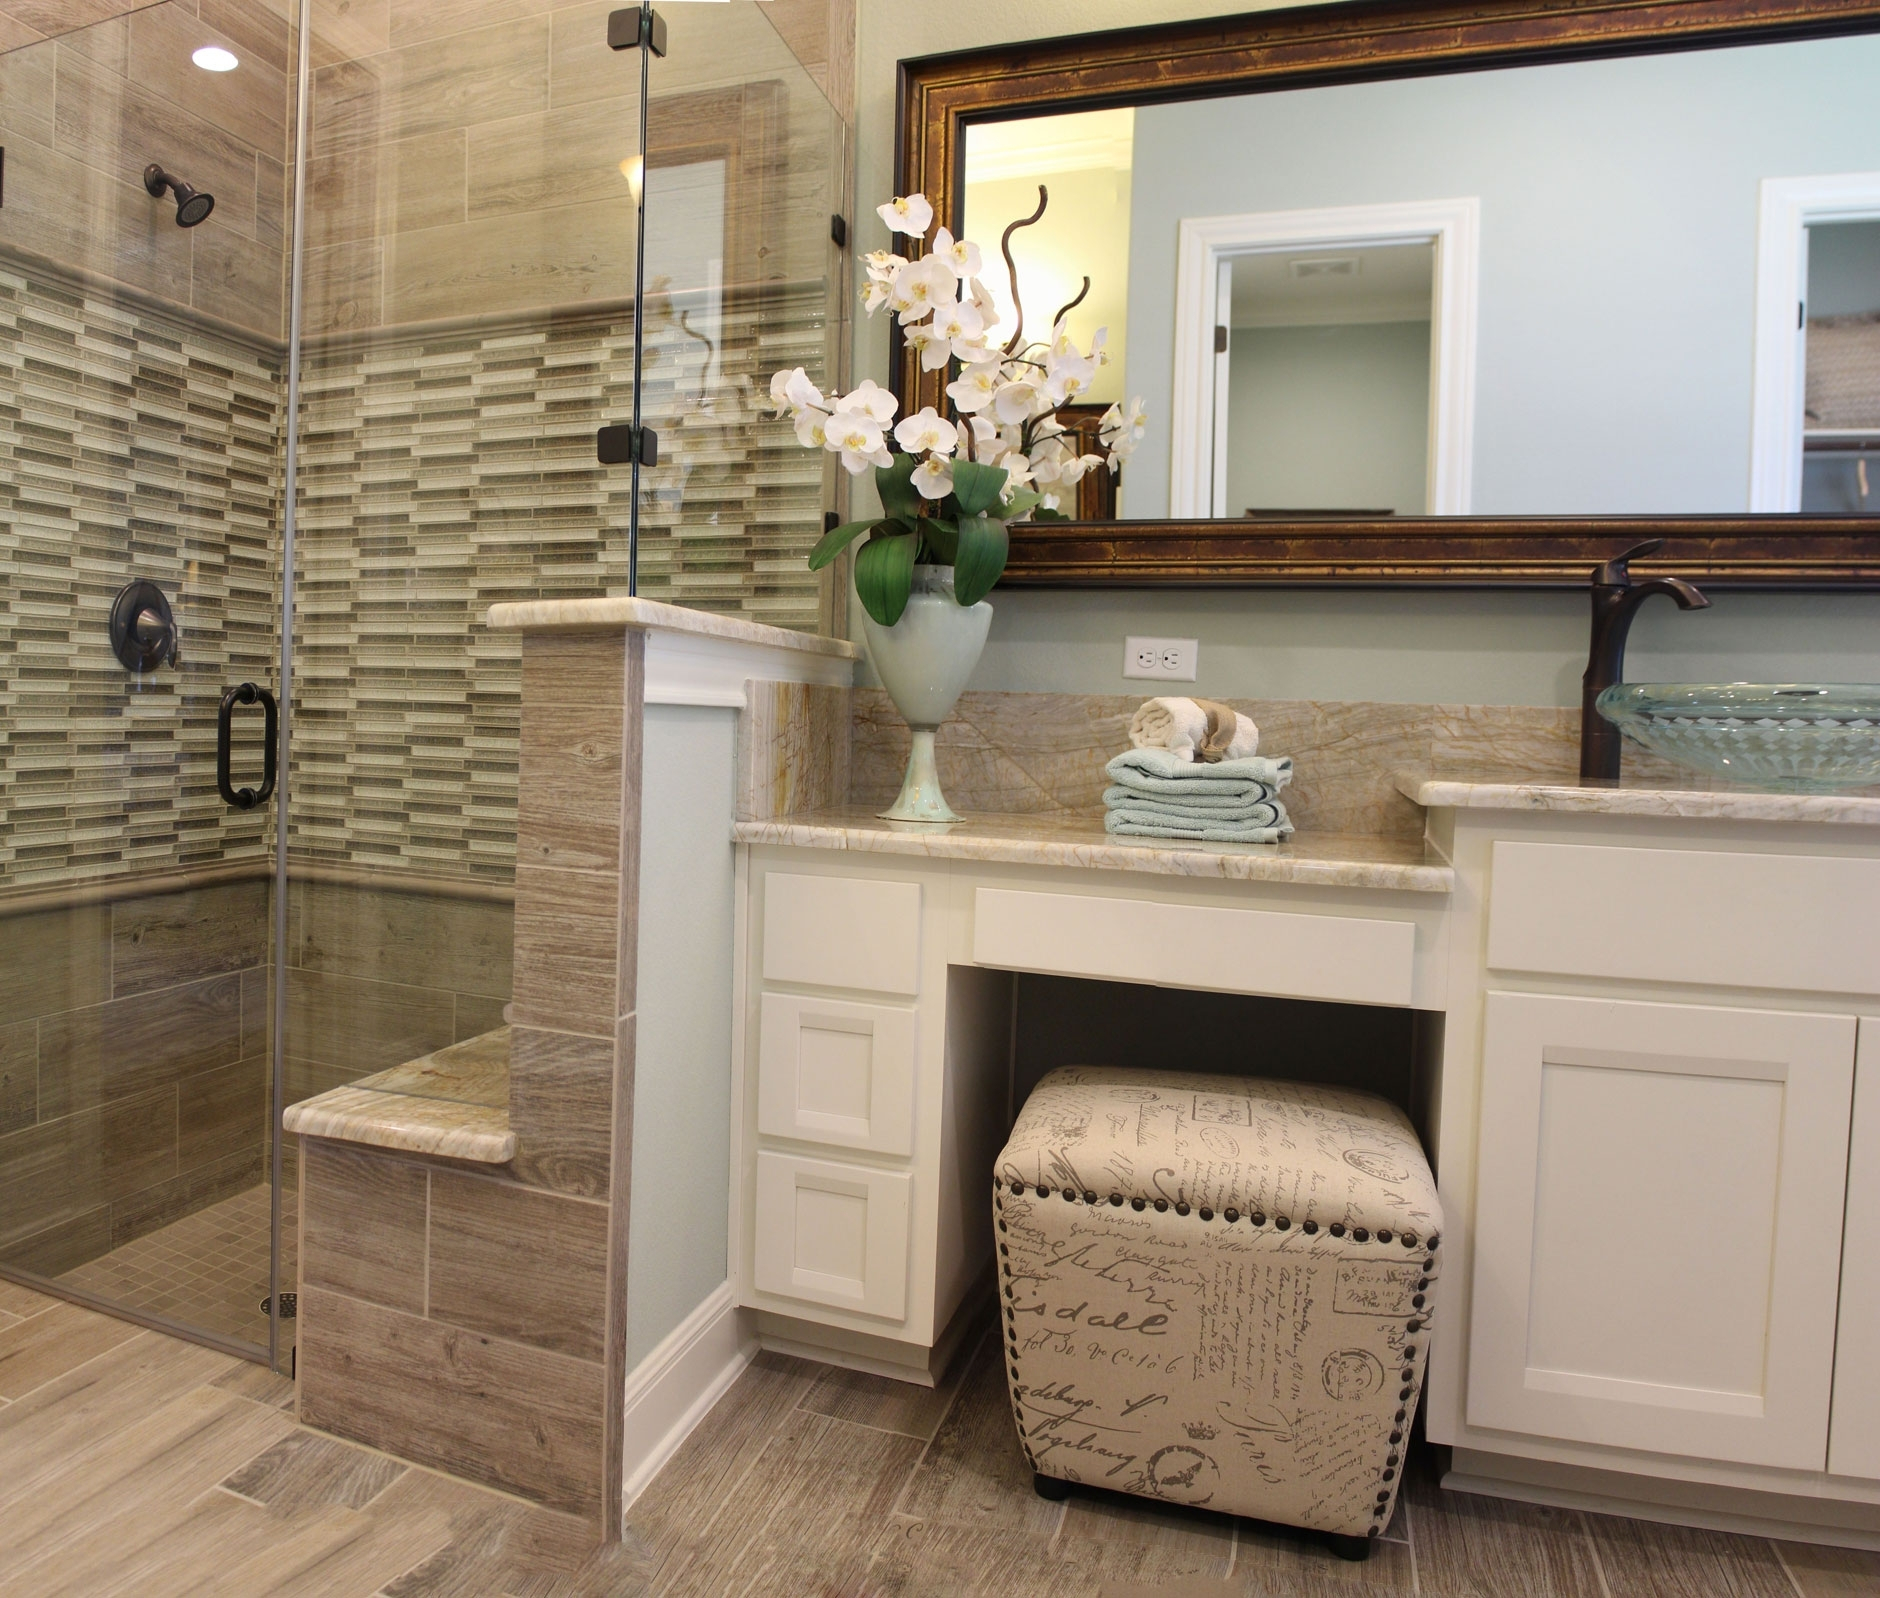 Glamorous Master Bath With White Cabinets And Vanity Seat Intended For inside Master Bathroom Vanity